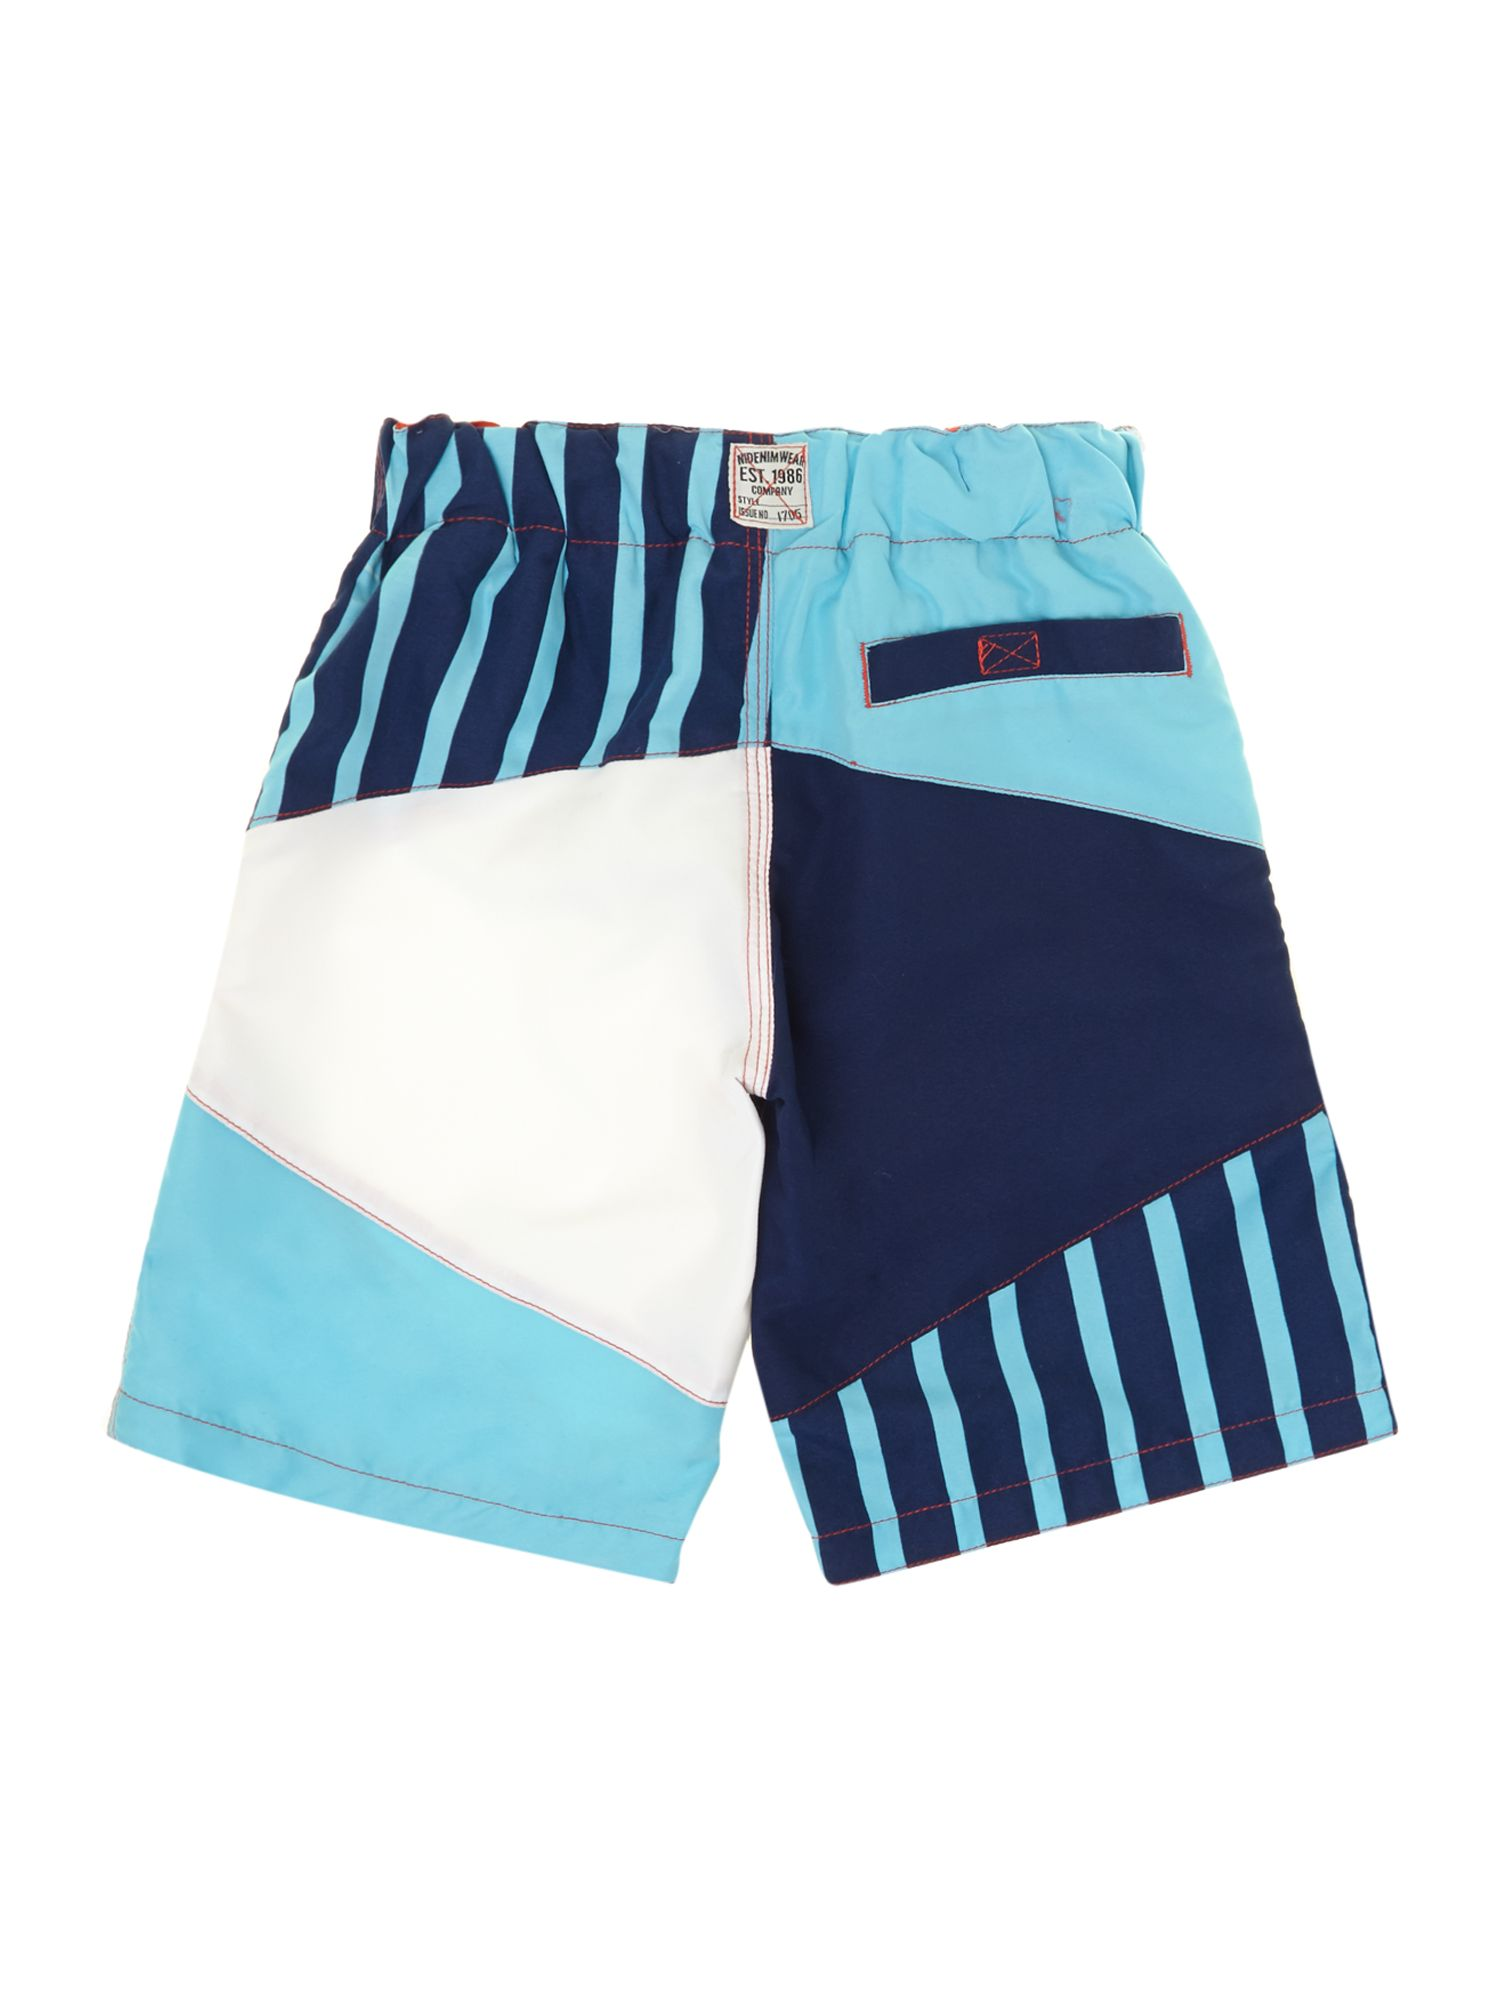 Boys long swim shorts in block print